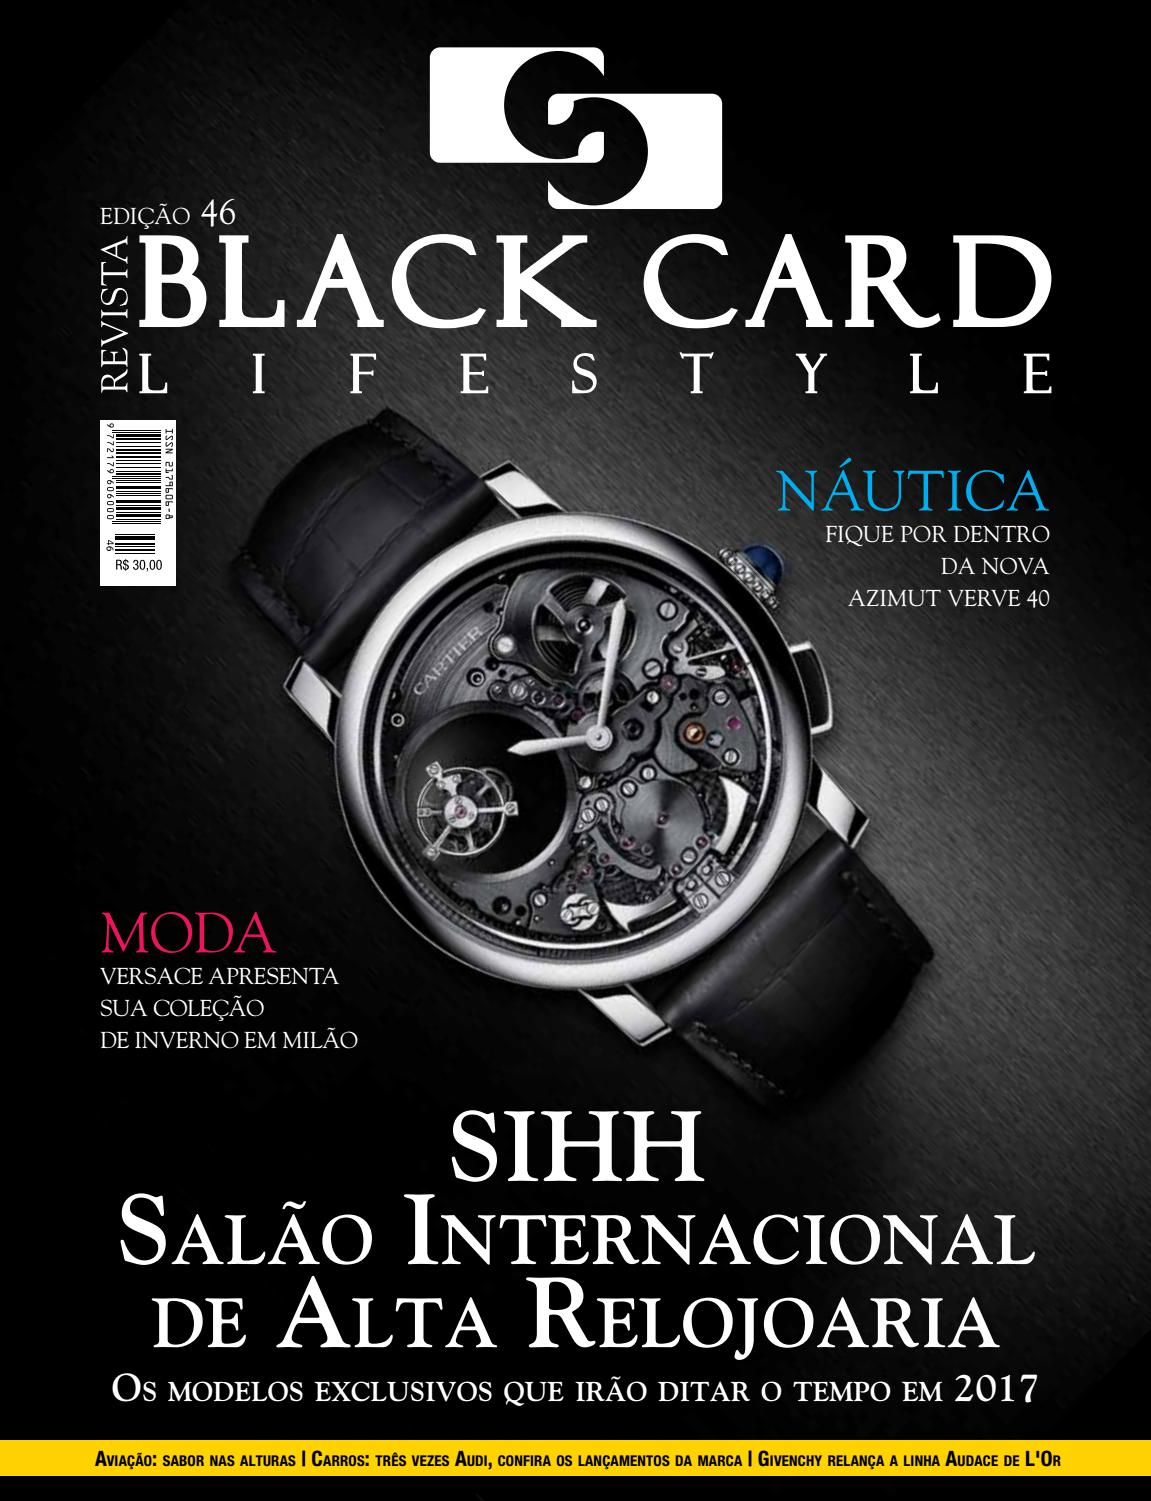 1078aaecb Revista Black Card Lifestyle - Edição 46 by Revista BlackCard Lifestyle -  issuu